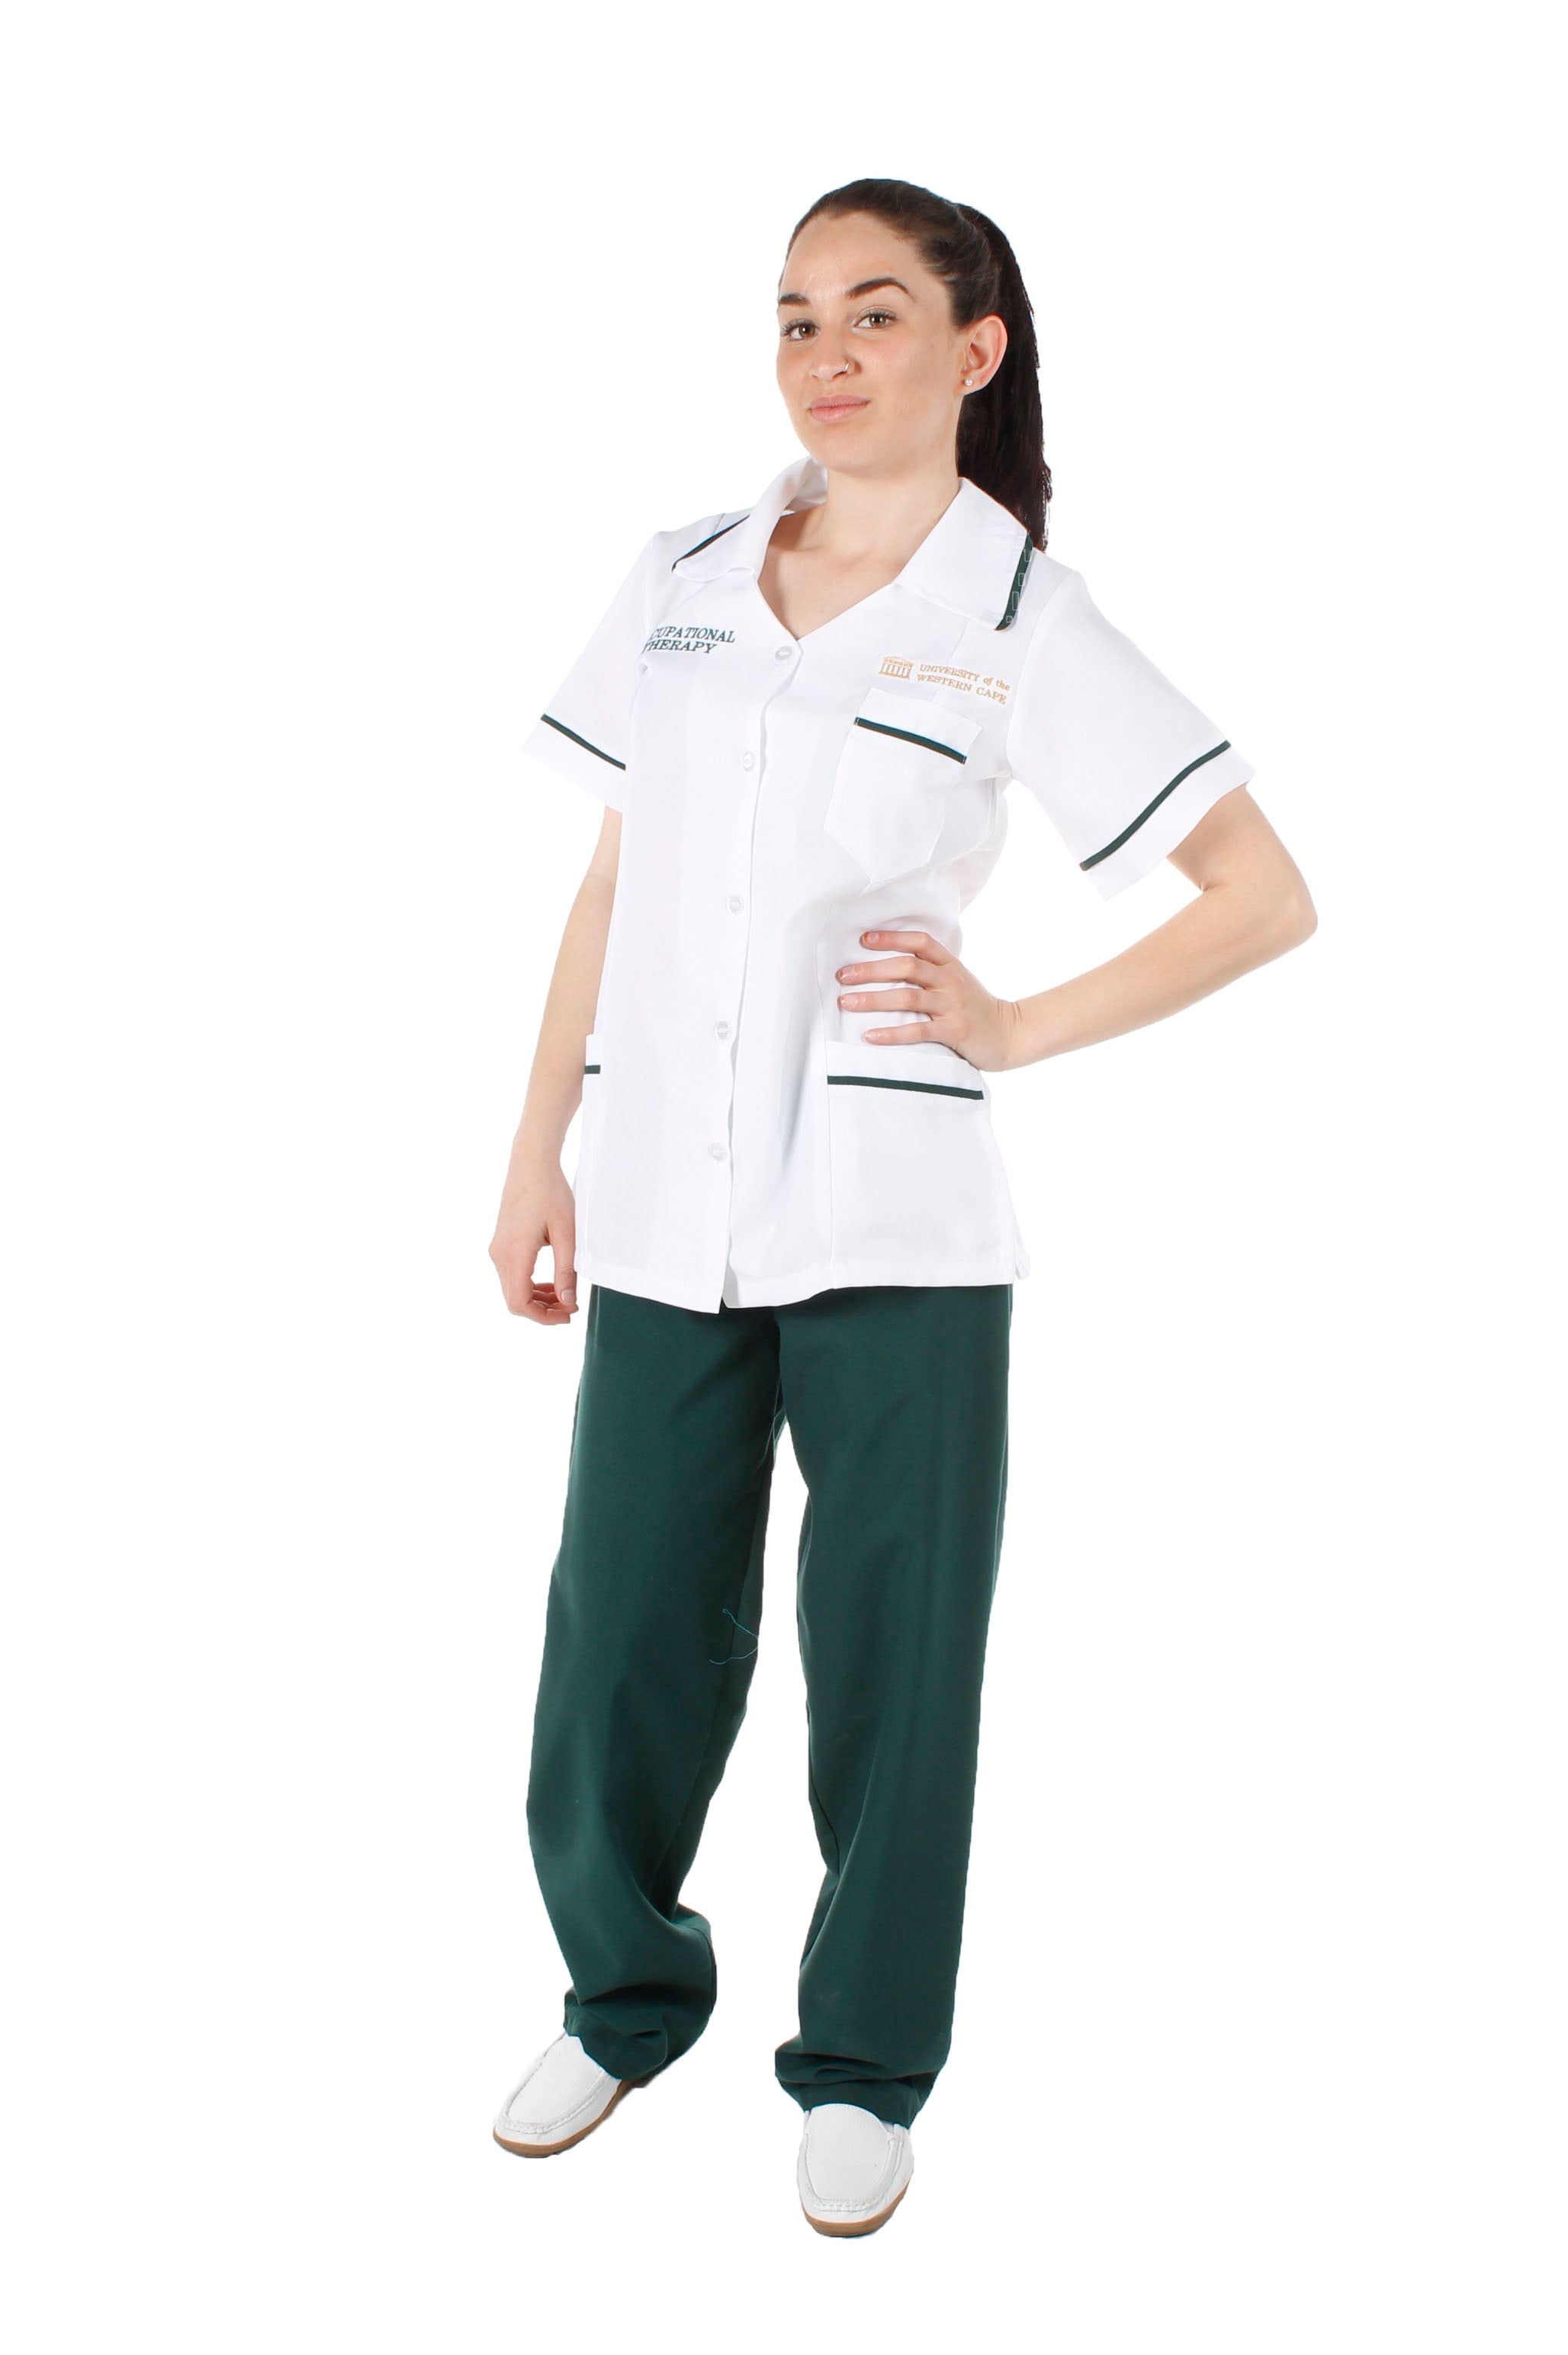 Occupational Therapy Pants - female